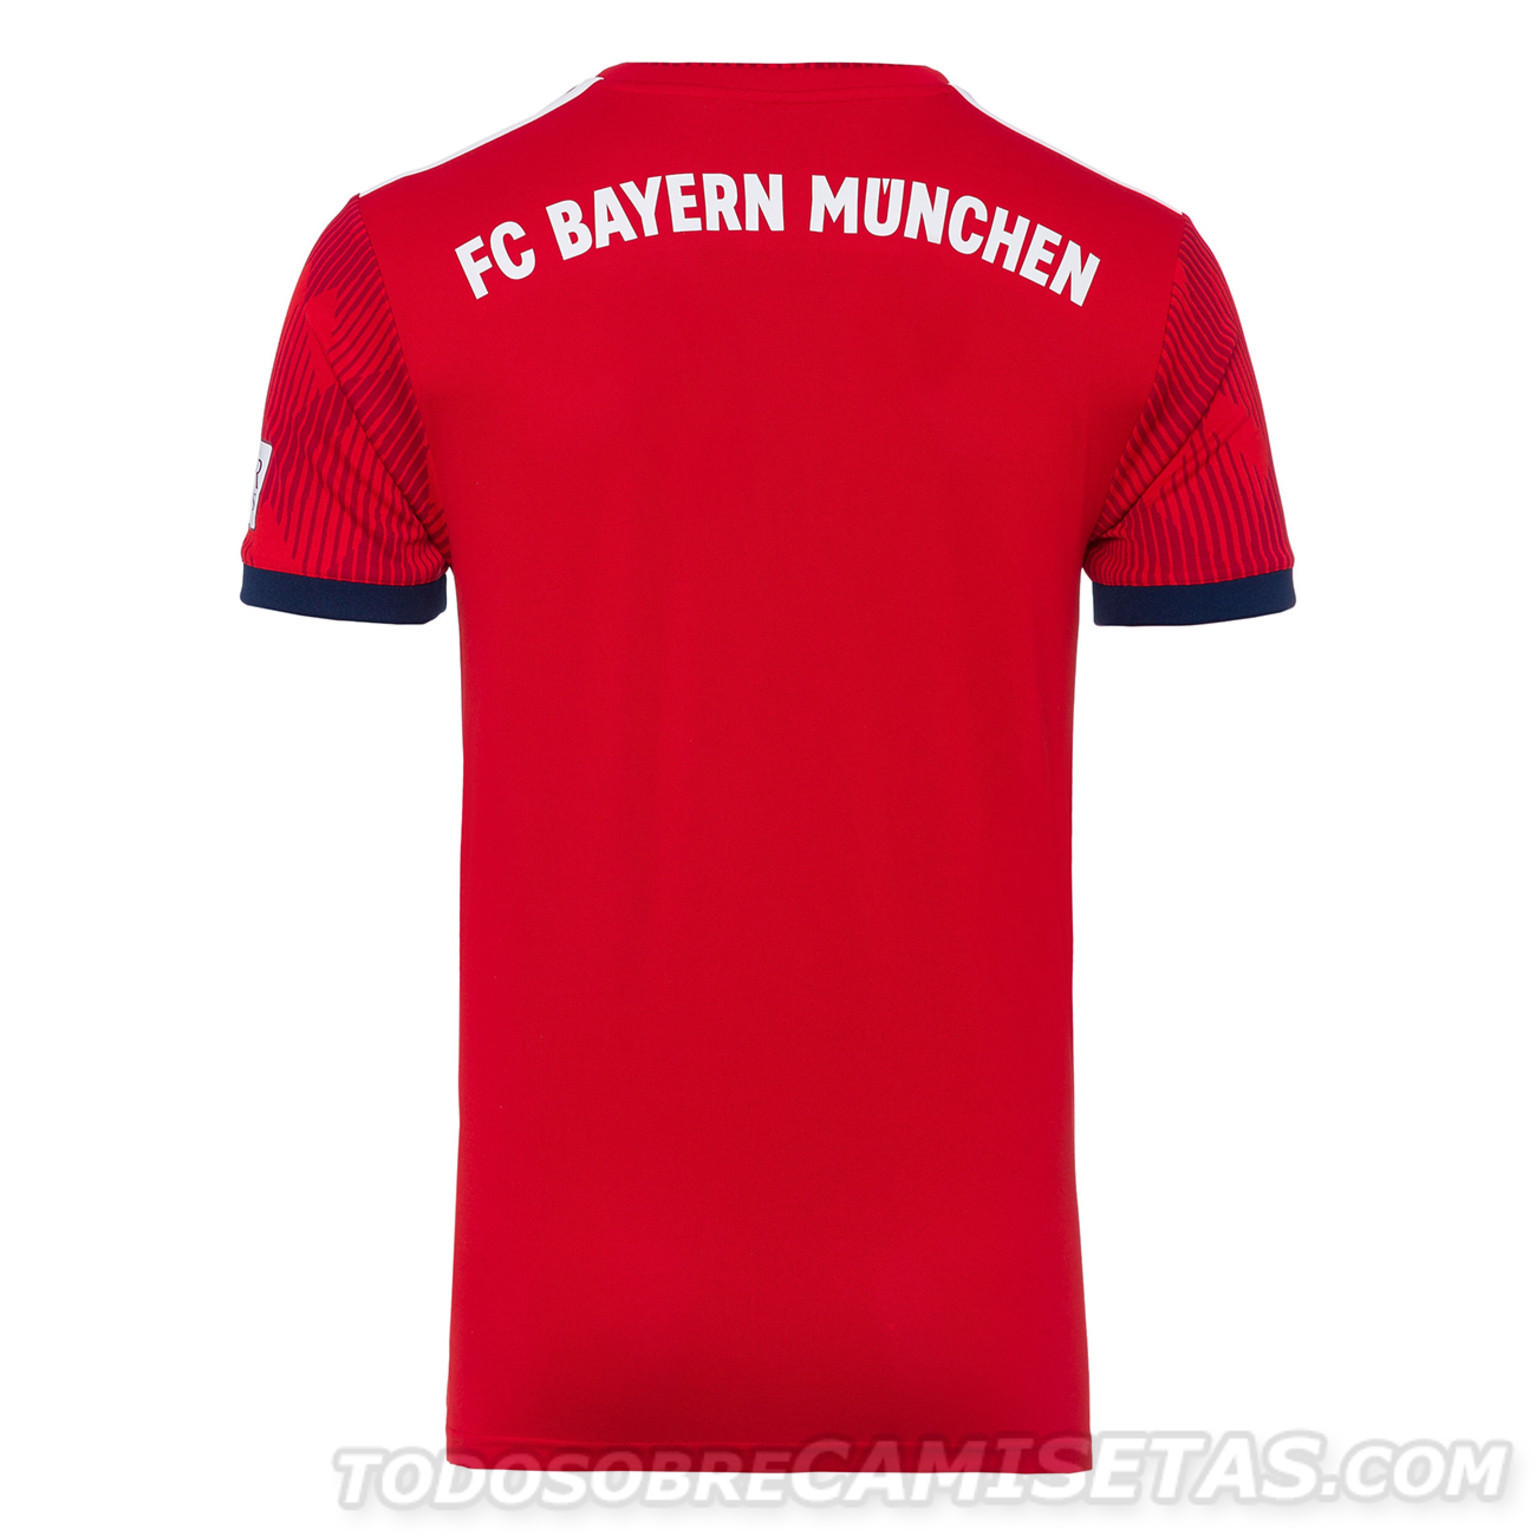 Bayern-Munich-2018-19-adidas-new-home-kit-7.jpg